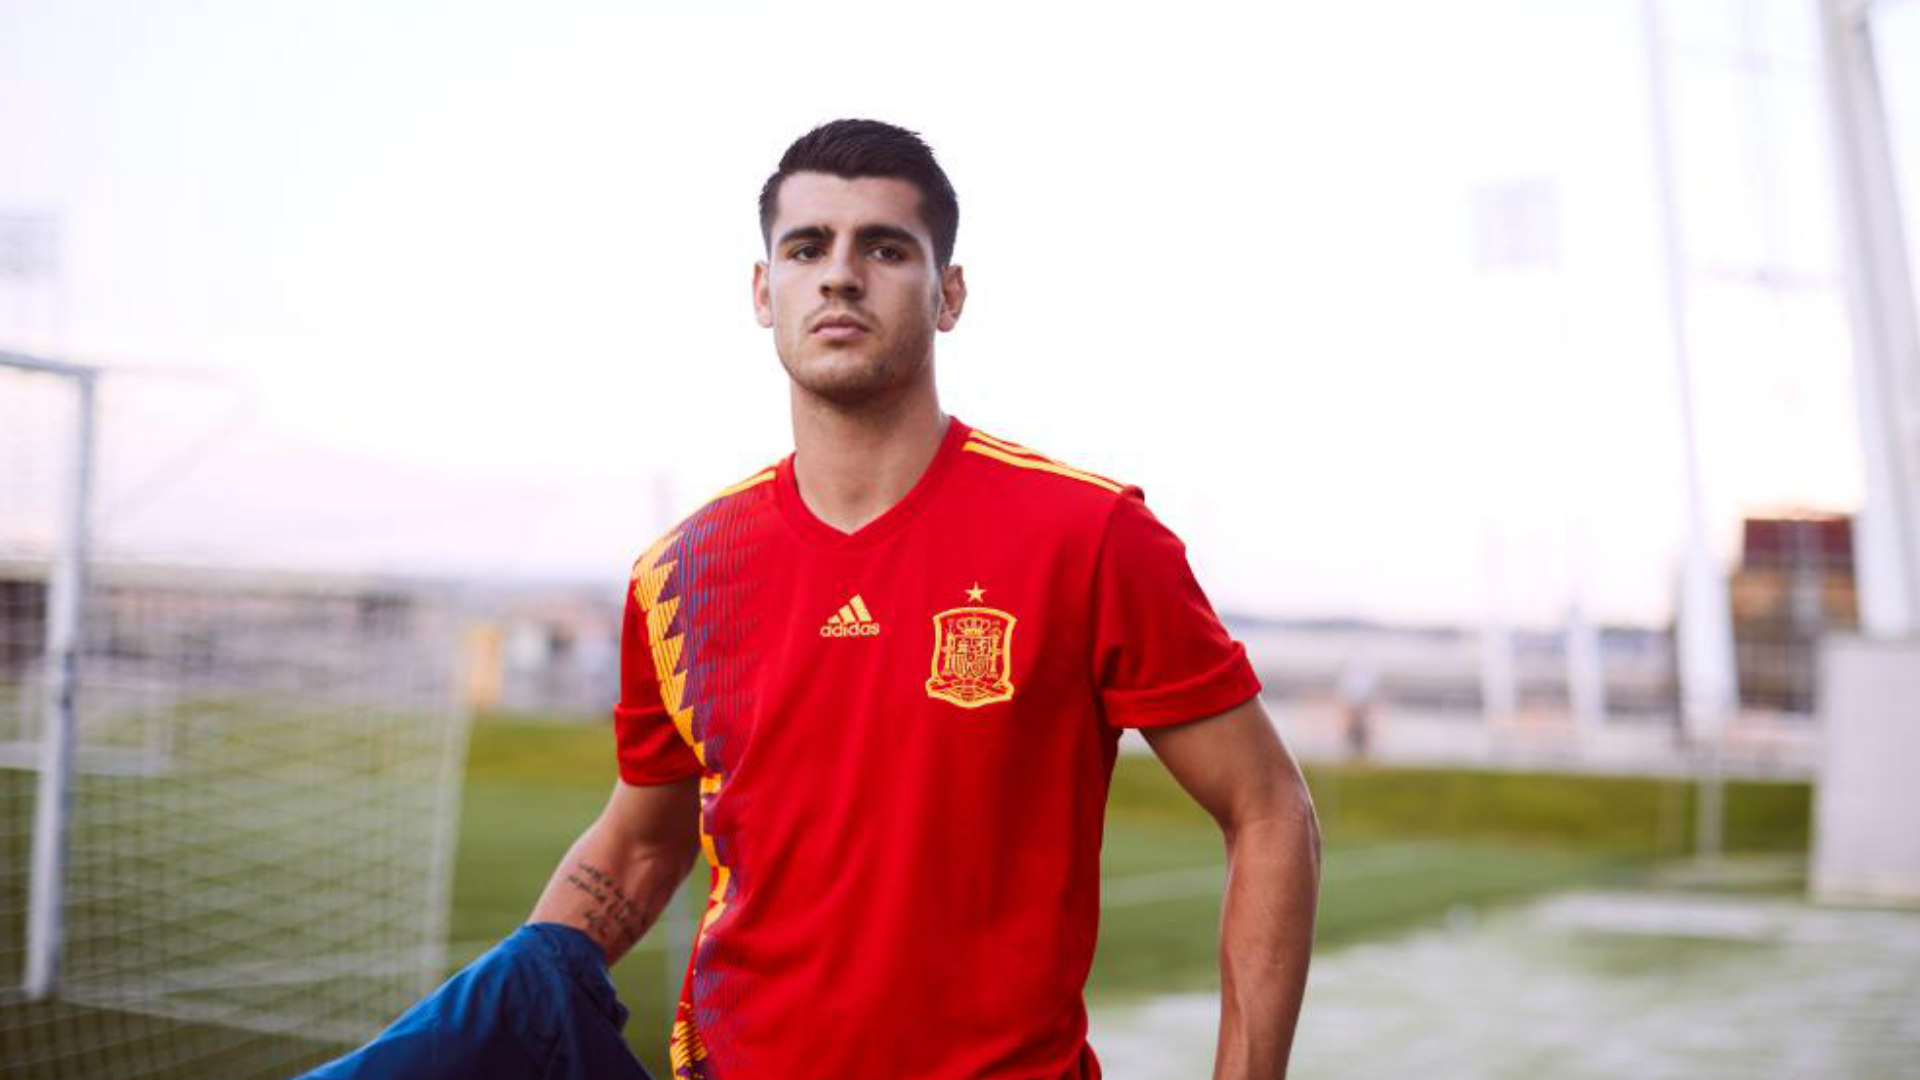 f337b3985 Spain World Cup 2018 kit  New retro Adidas design